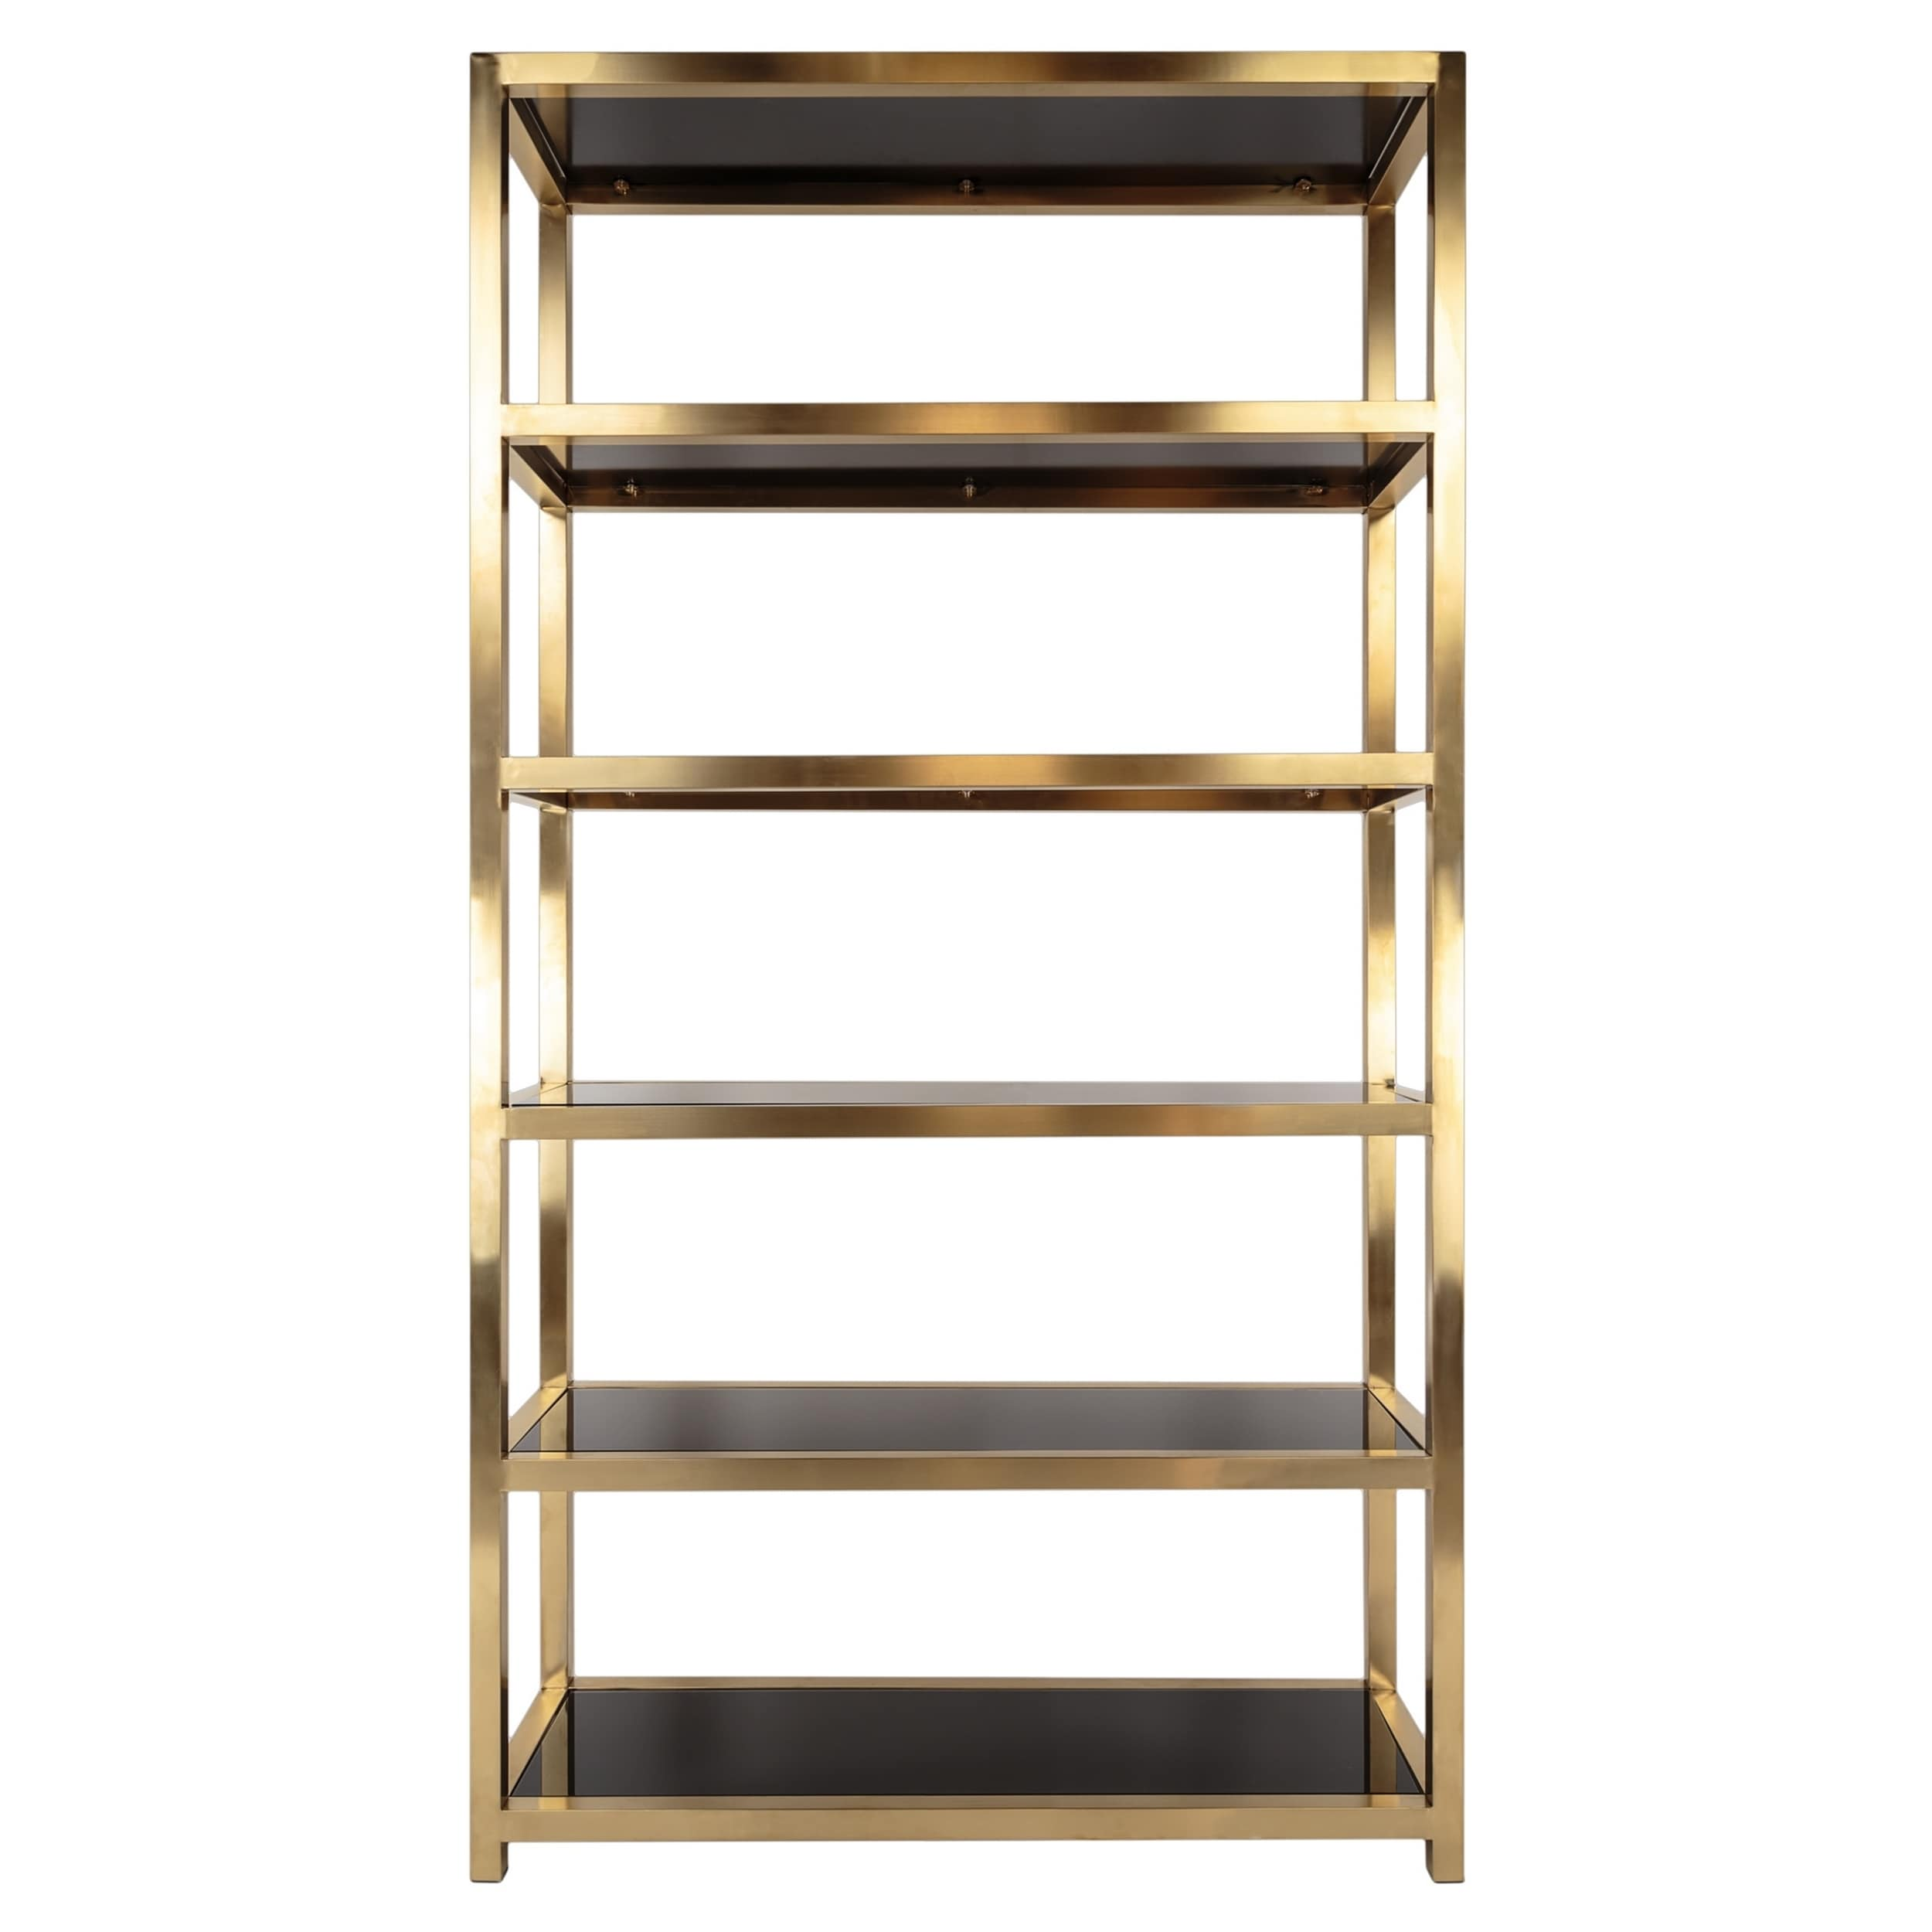 bookshelves gold bookcase product shelvingetagere type pin bookcasemetal bookcases bookcasegold iron color materials metal glass features